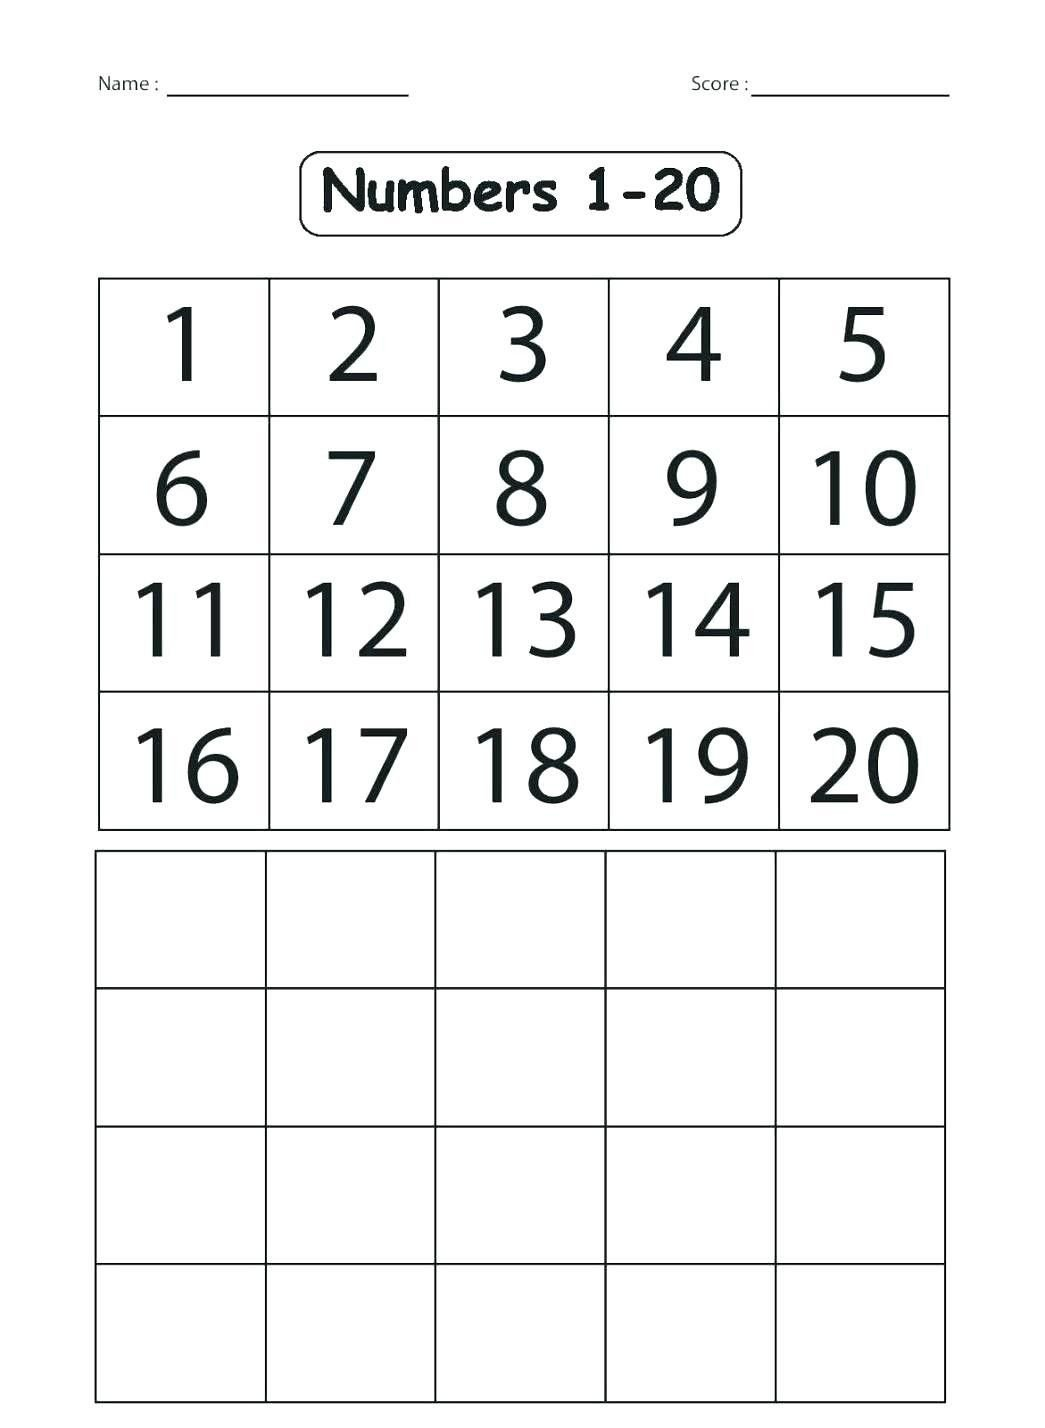 Kindergarten Number Recognition Worksheets 4 Numbers 1 20 Printable Free In 2020